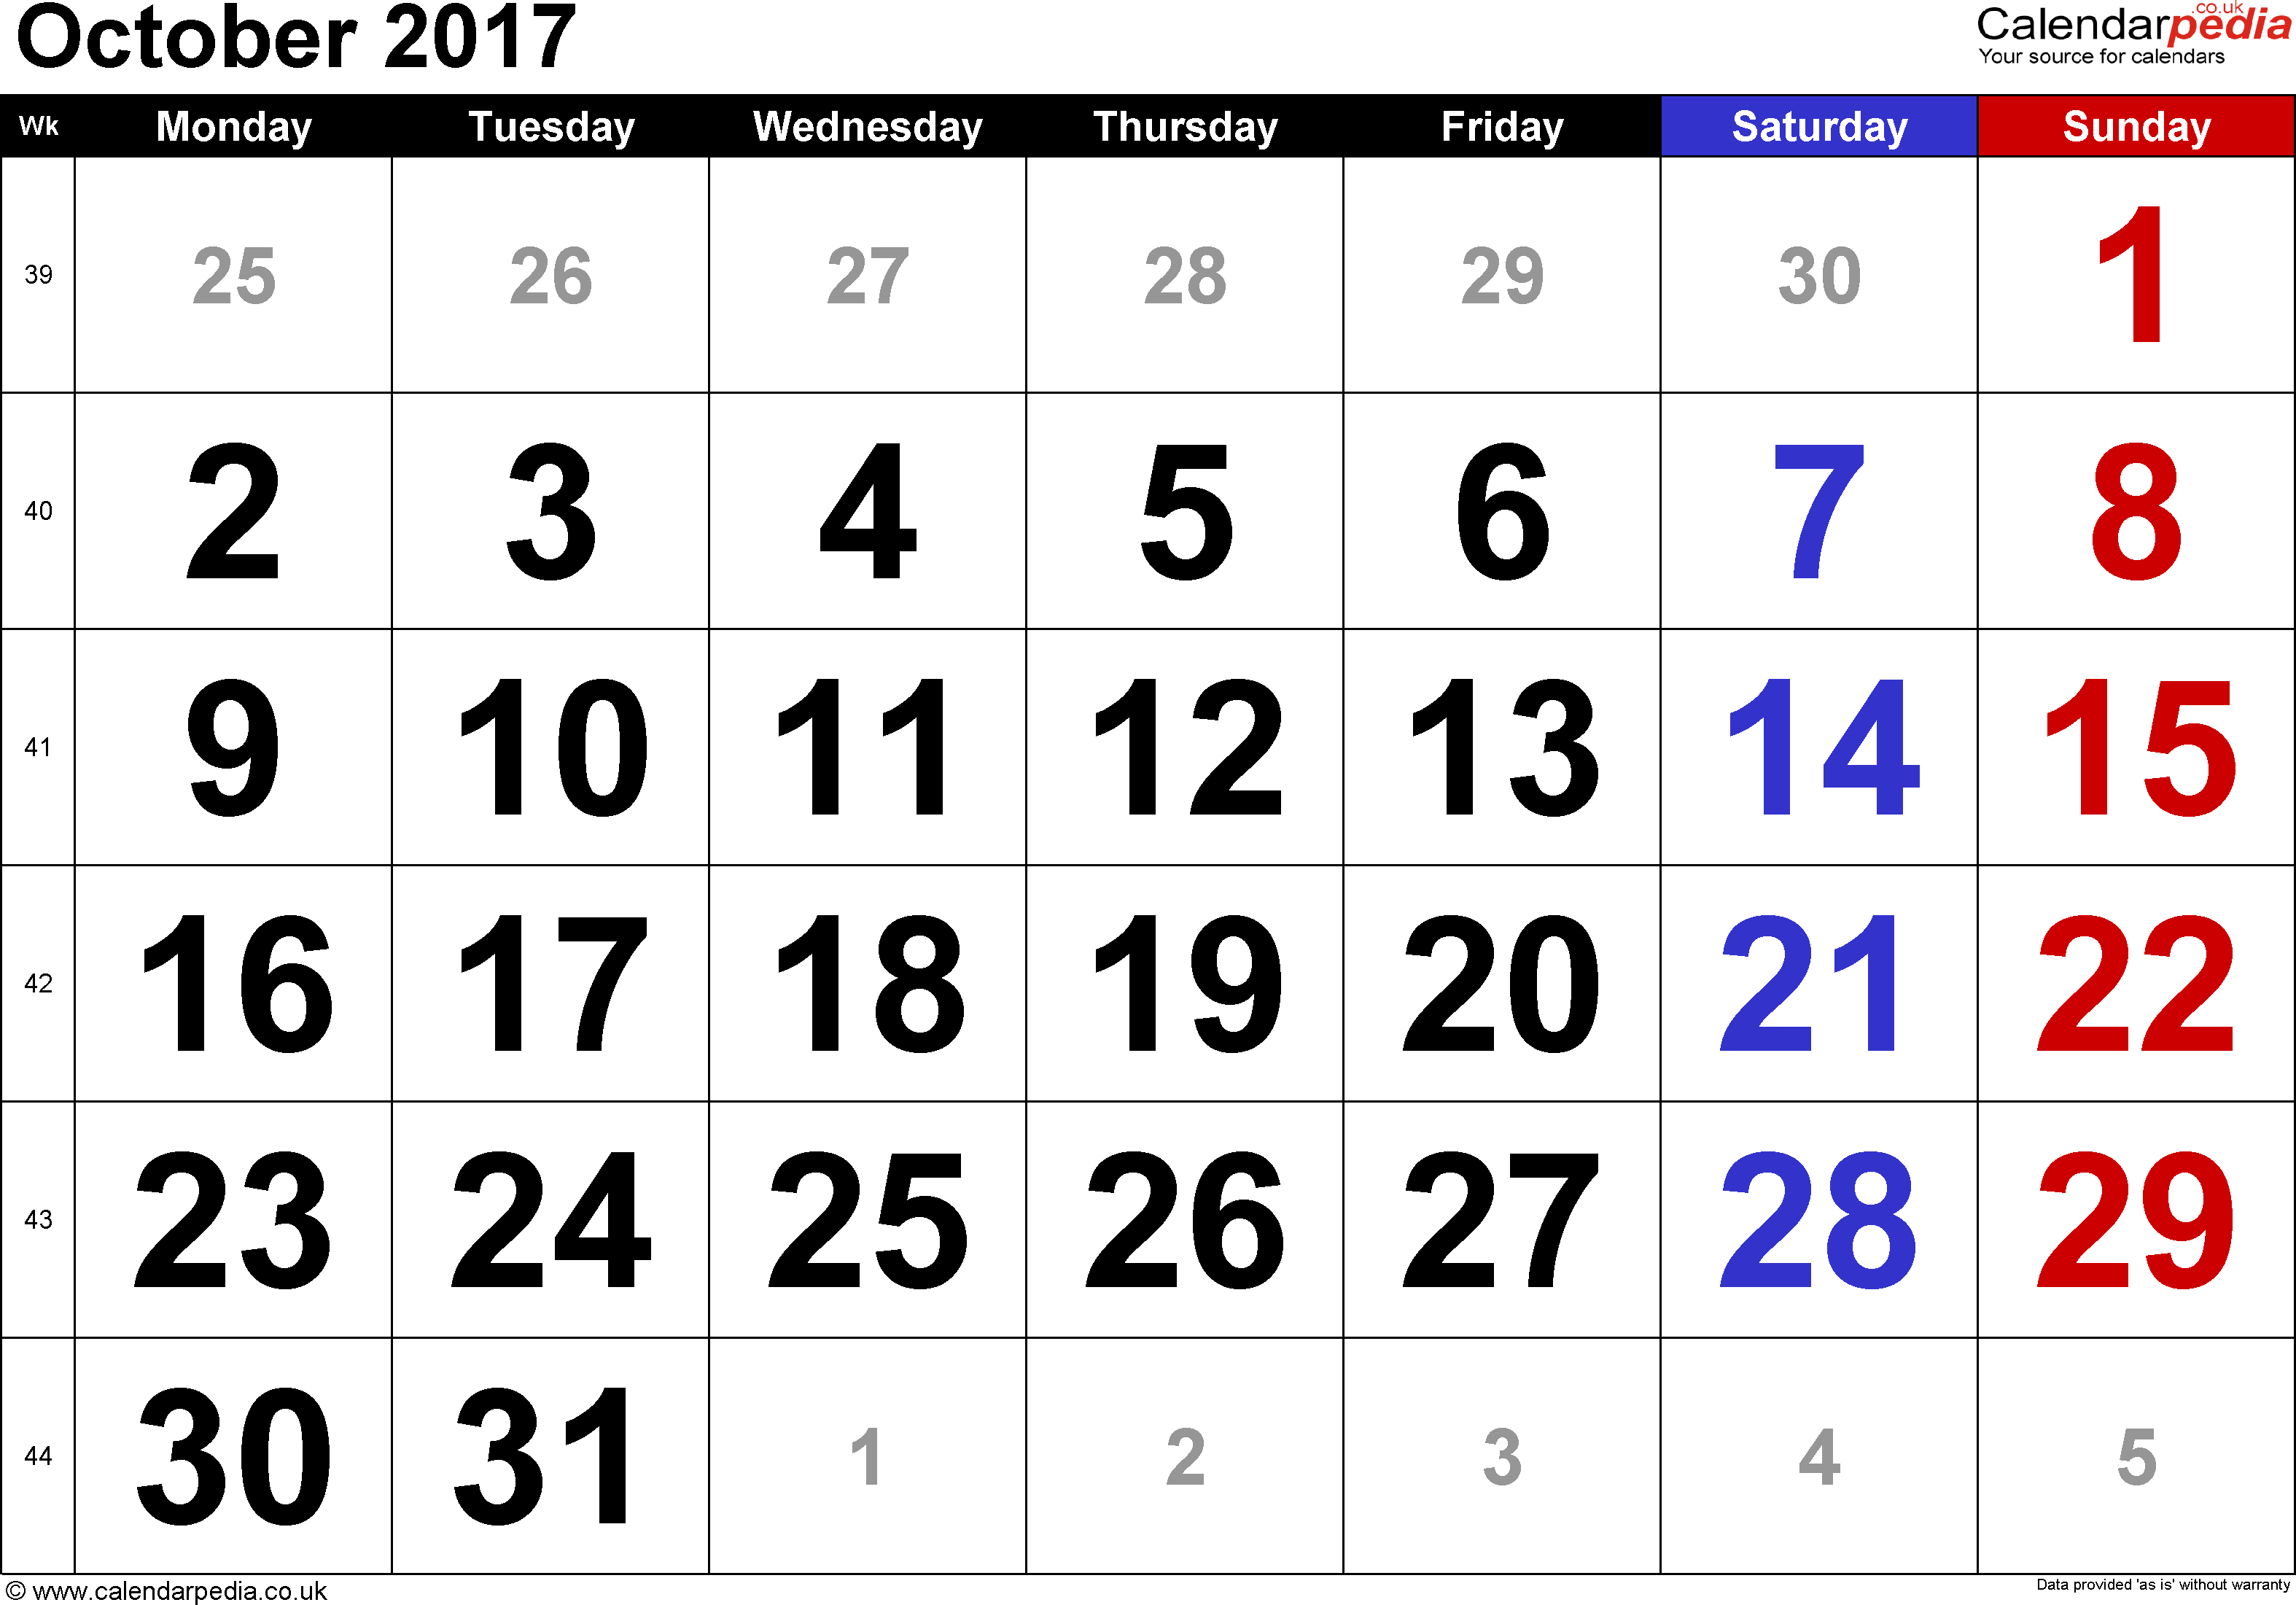 October Calendar 2017 with Holidays - …